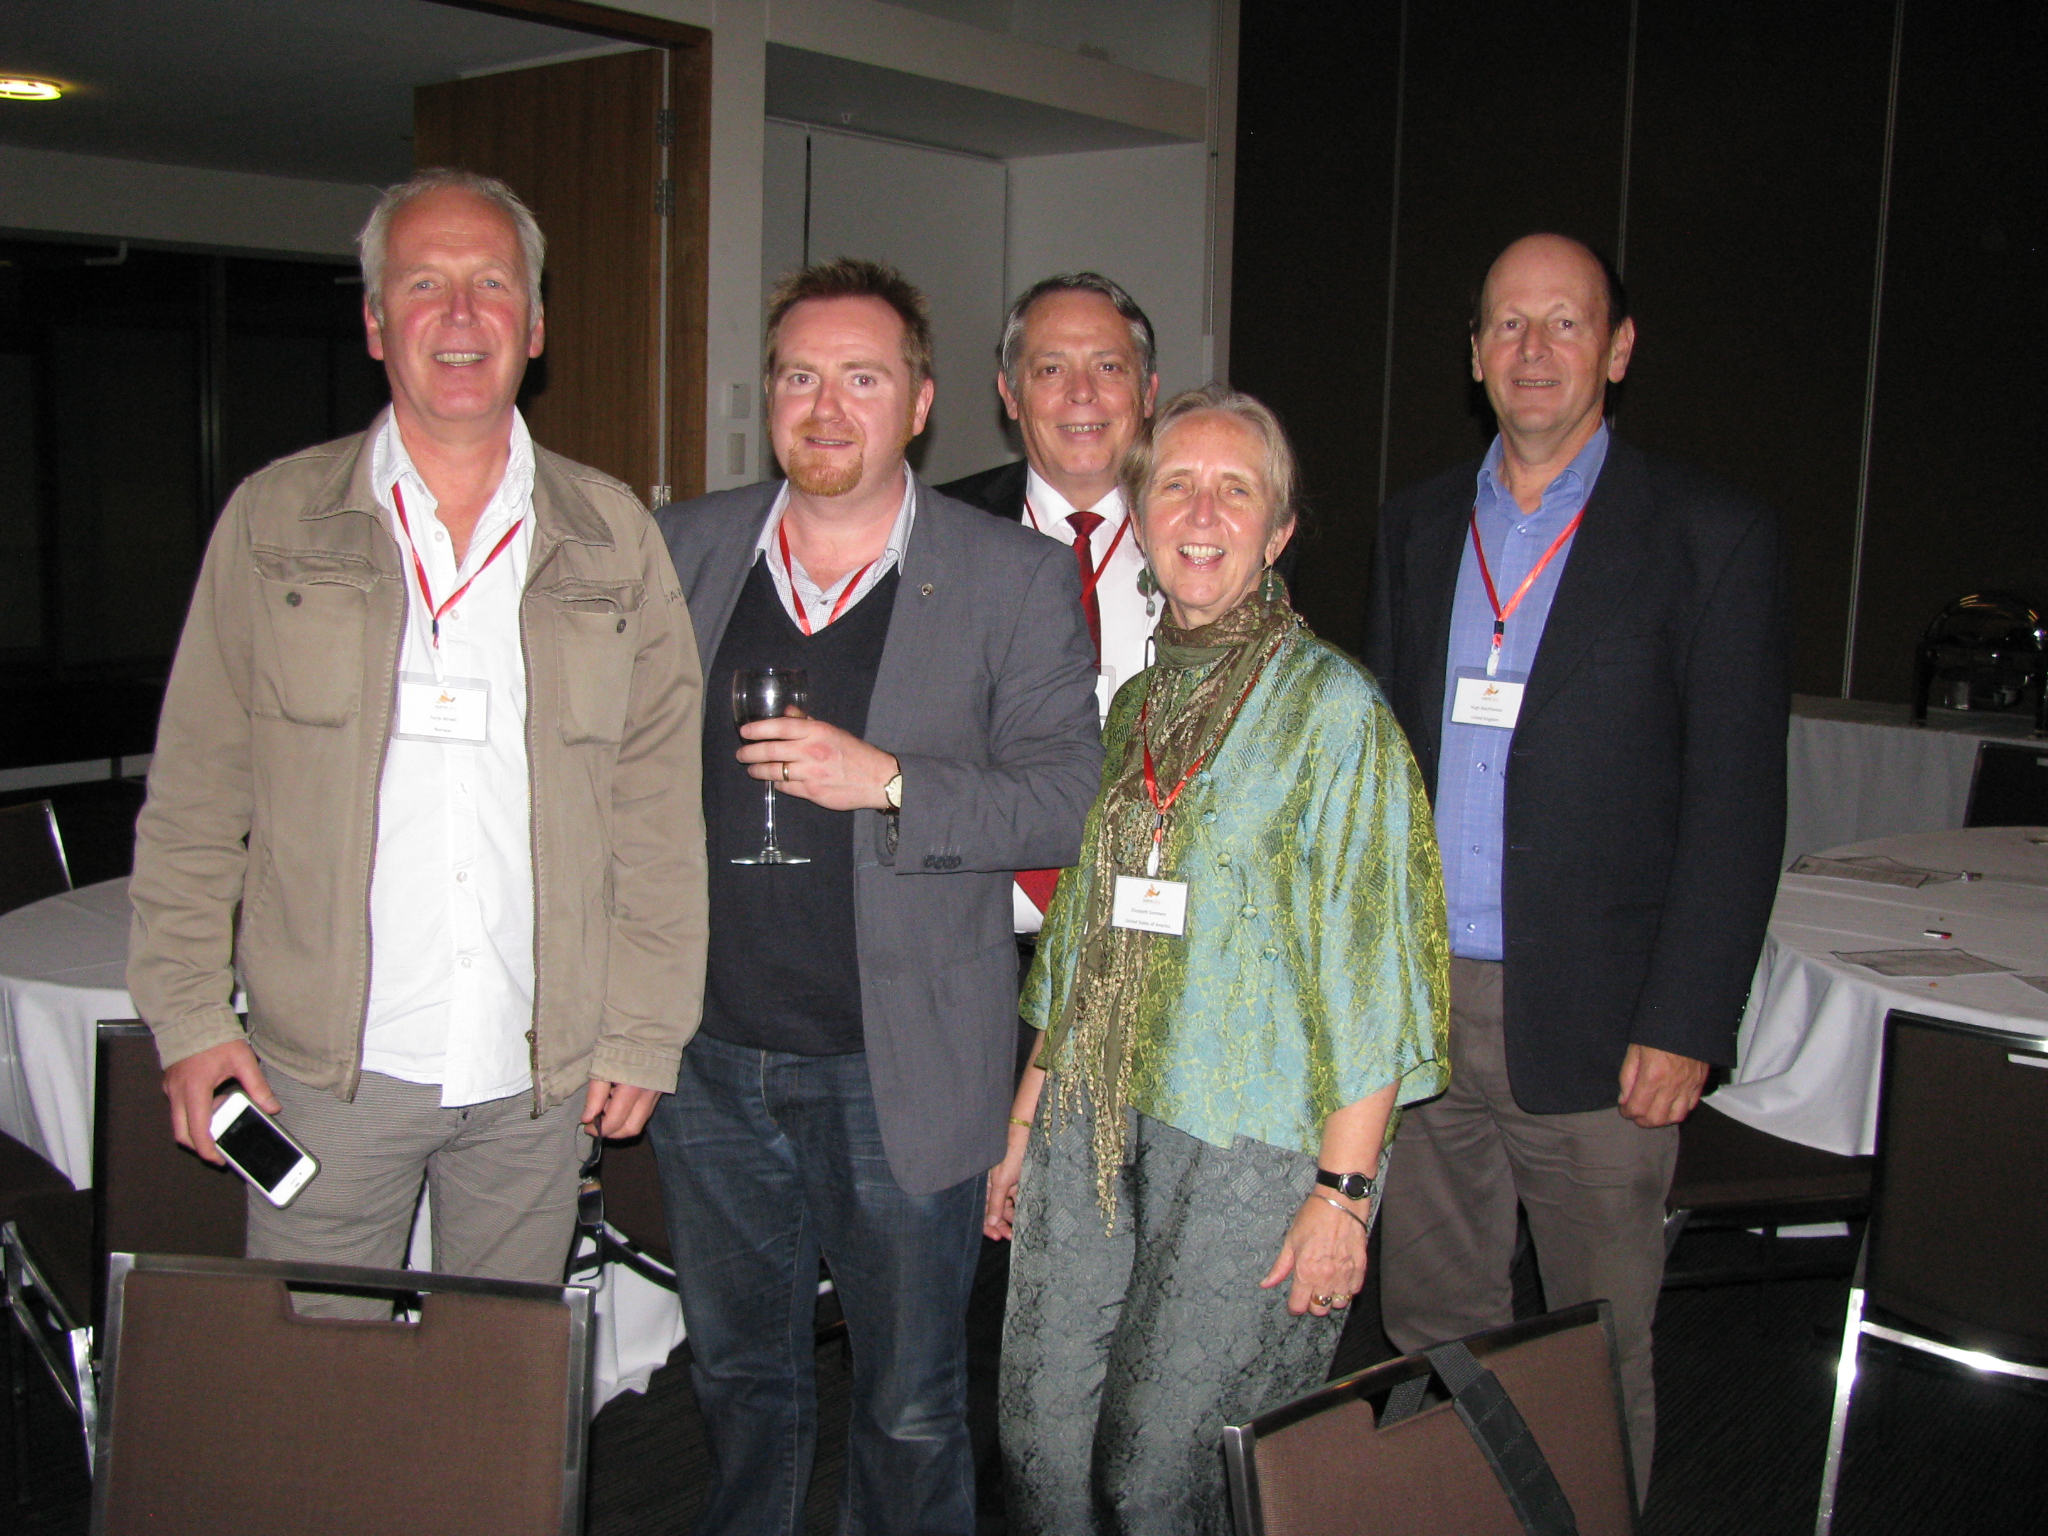 Terje Alraek, John Adams, John McDonald, unknown & Hugh MacPherson at ISAMS conference Sydney 2012